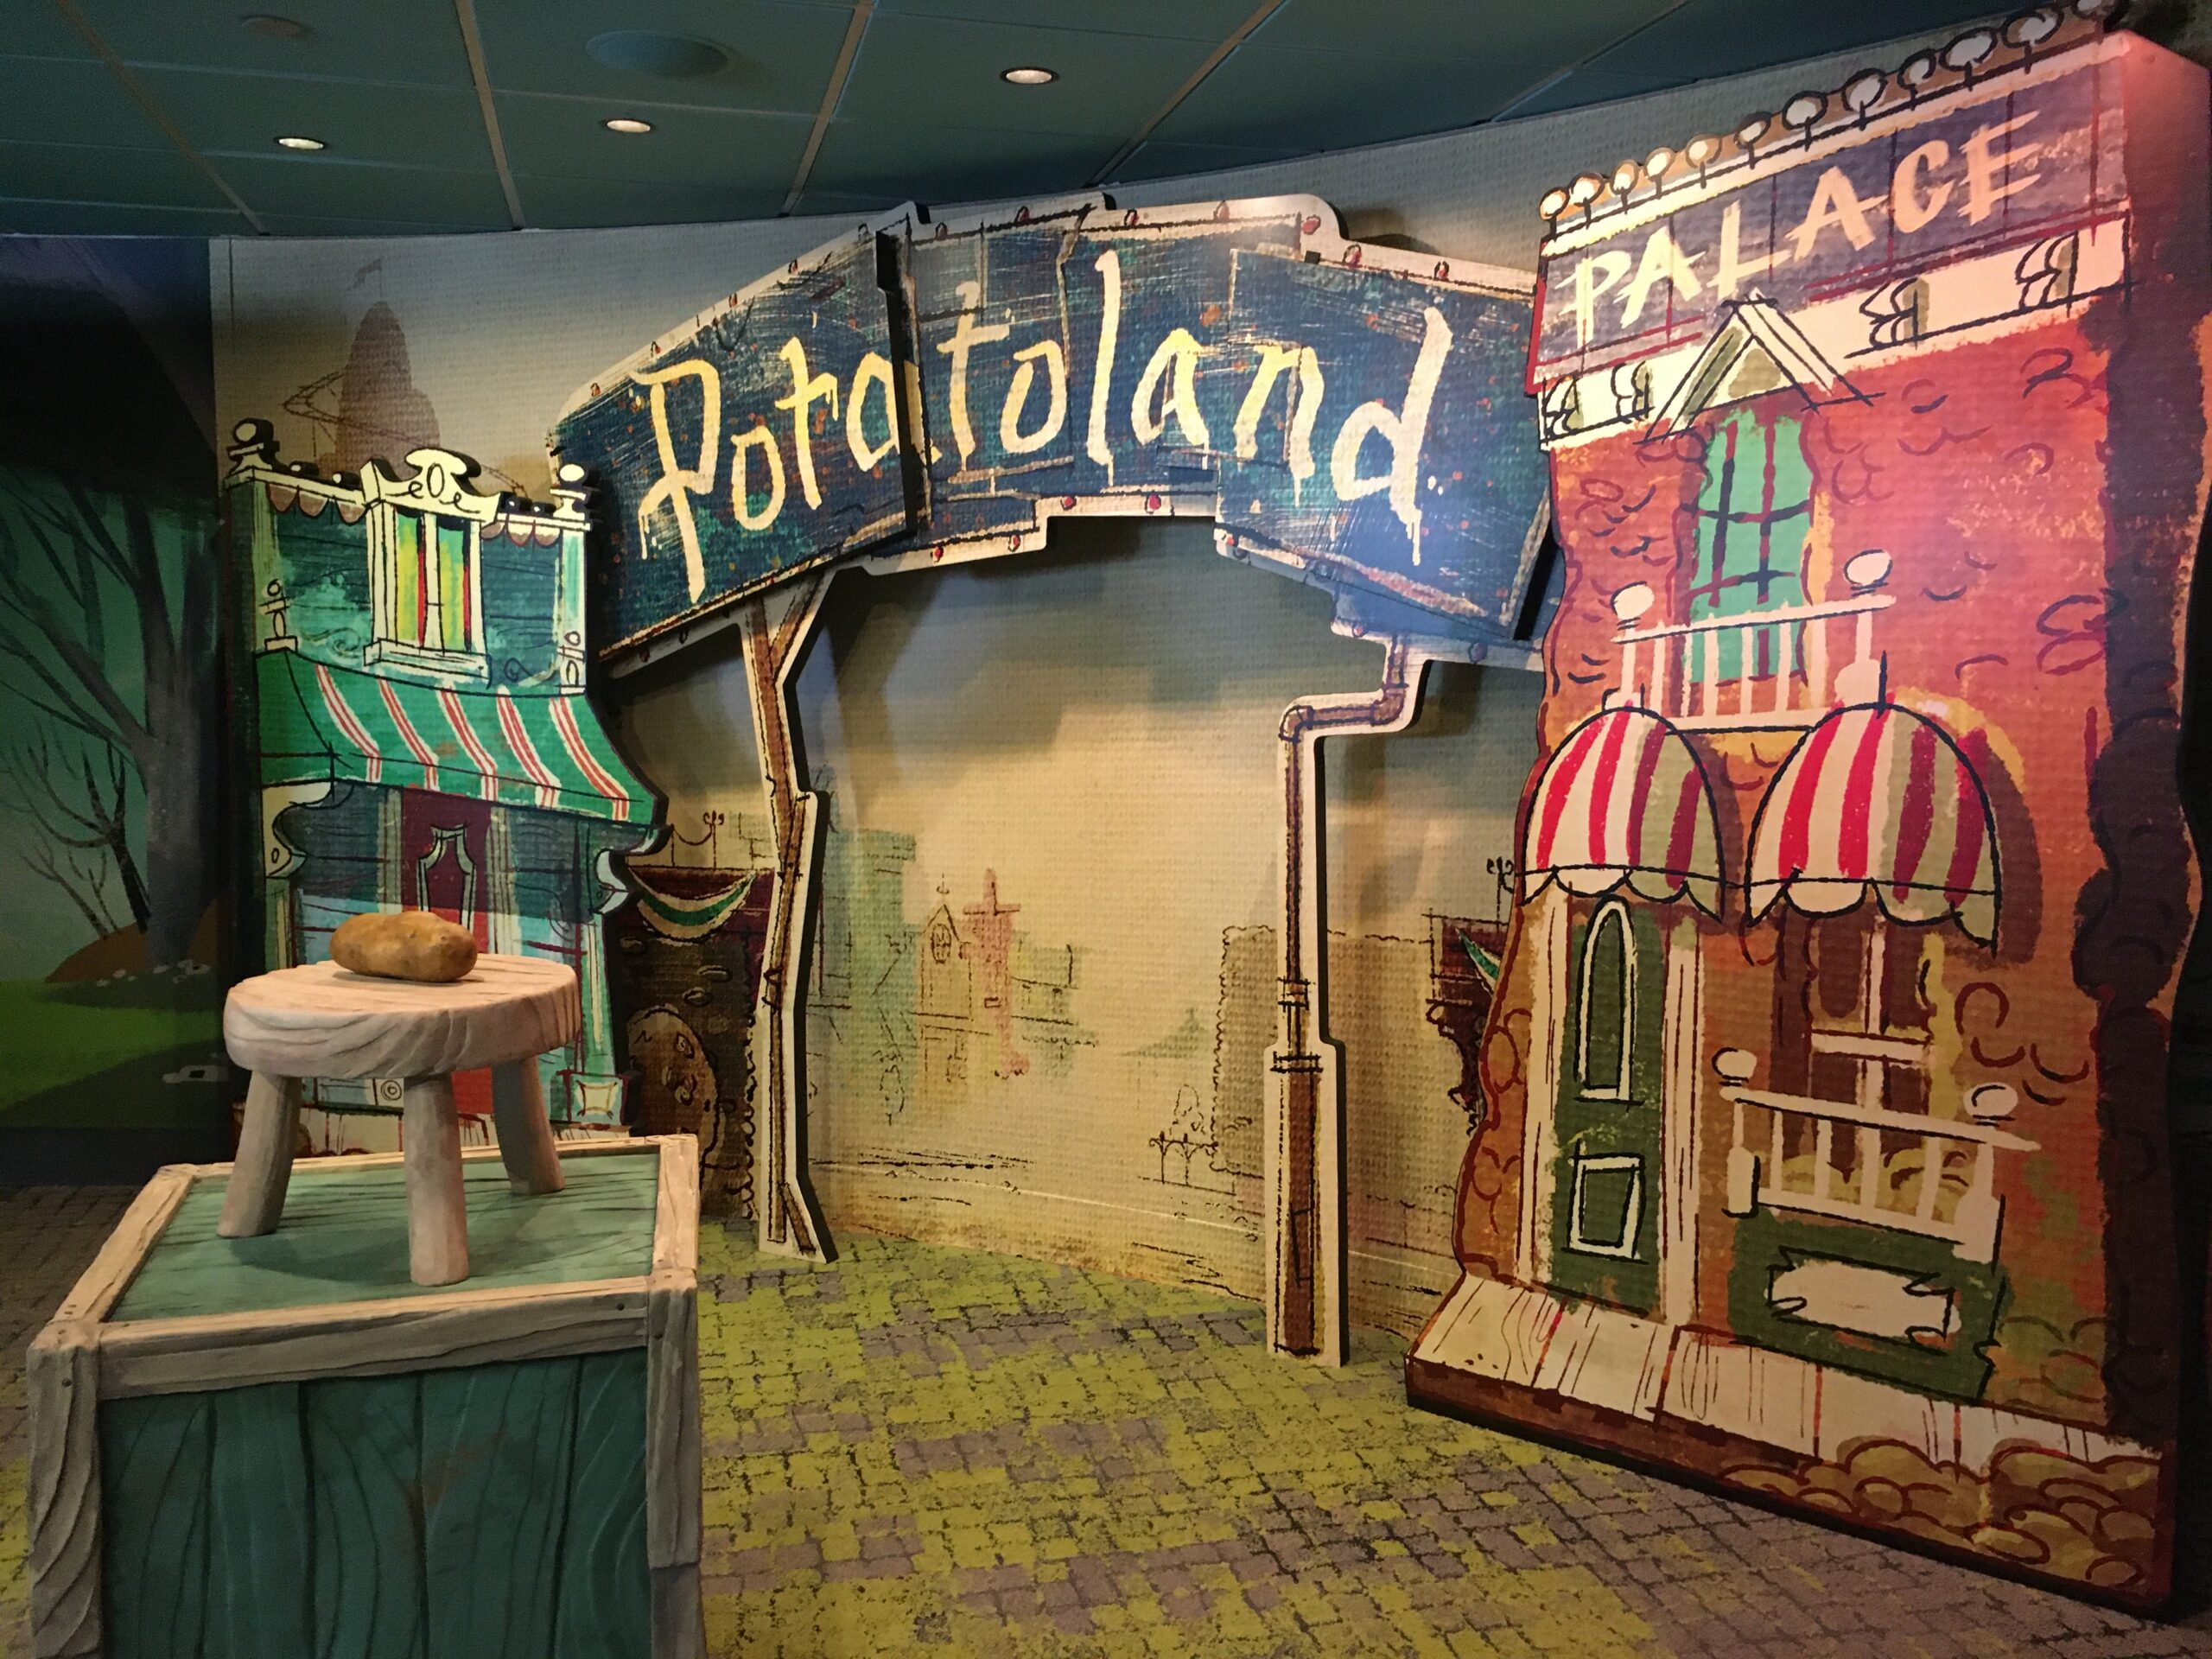 disney hollywood studios photo opportunity at Potatoland following Mickey's vacation fun